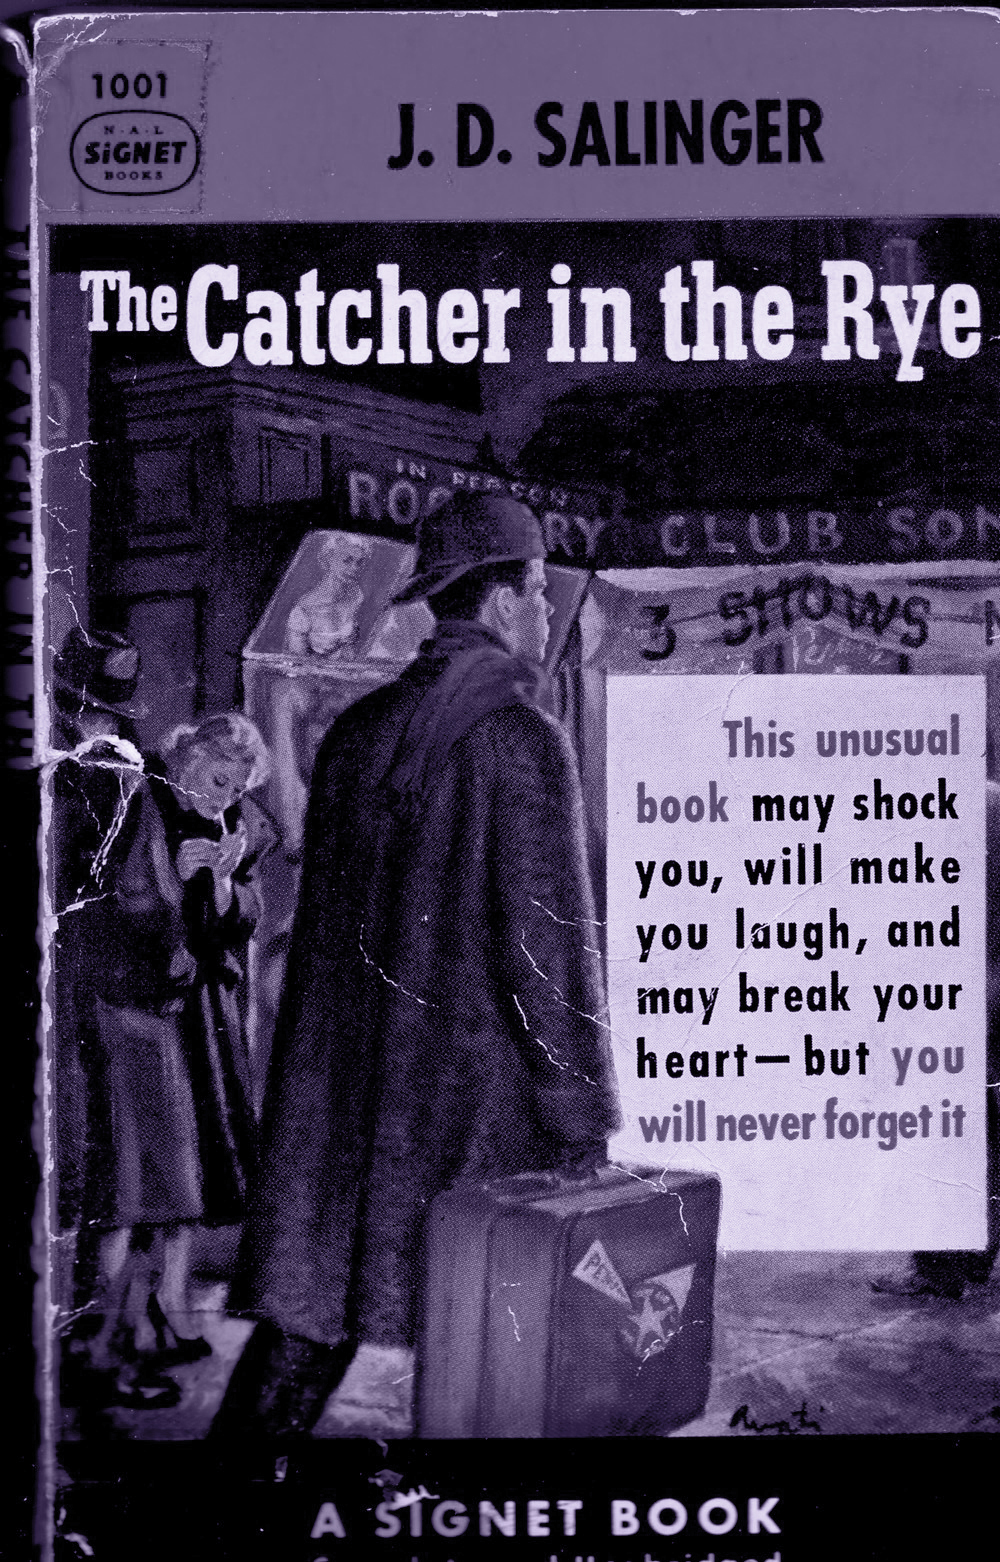 the catcher in the rye coming of age The catcher in the rye has 2,329,944 ratings and 49,197 reviews mark said: journal entrytoday i am 15 years old everything is all bullshit, as usual.